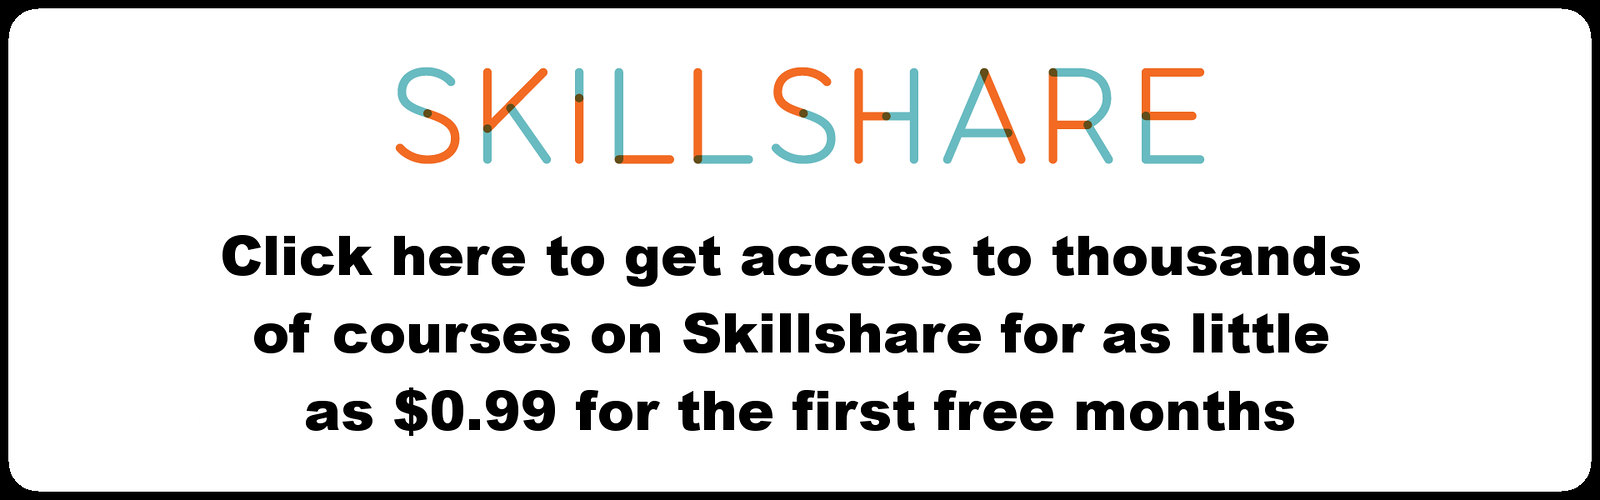 skillshare social media courses 0.99 sign up